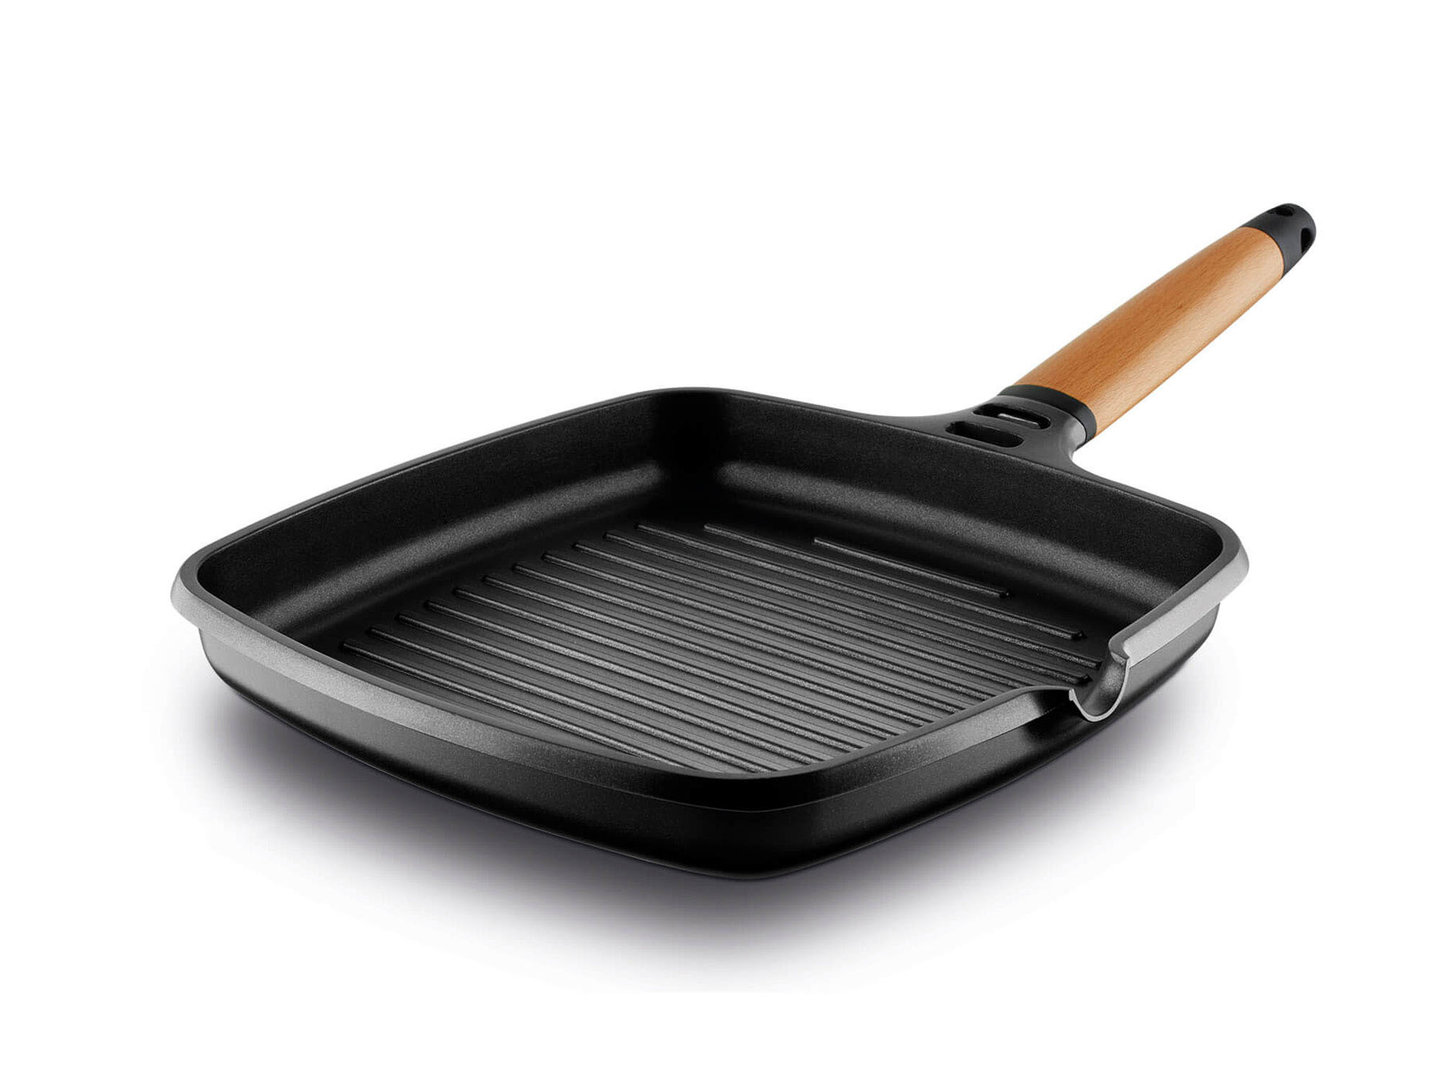 CASTEY mini grill pan cast alu CLASSIC 22 x 22 cm detachable wooden handle induction